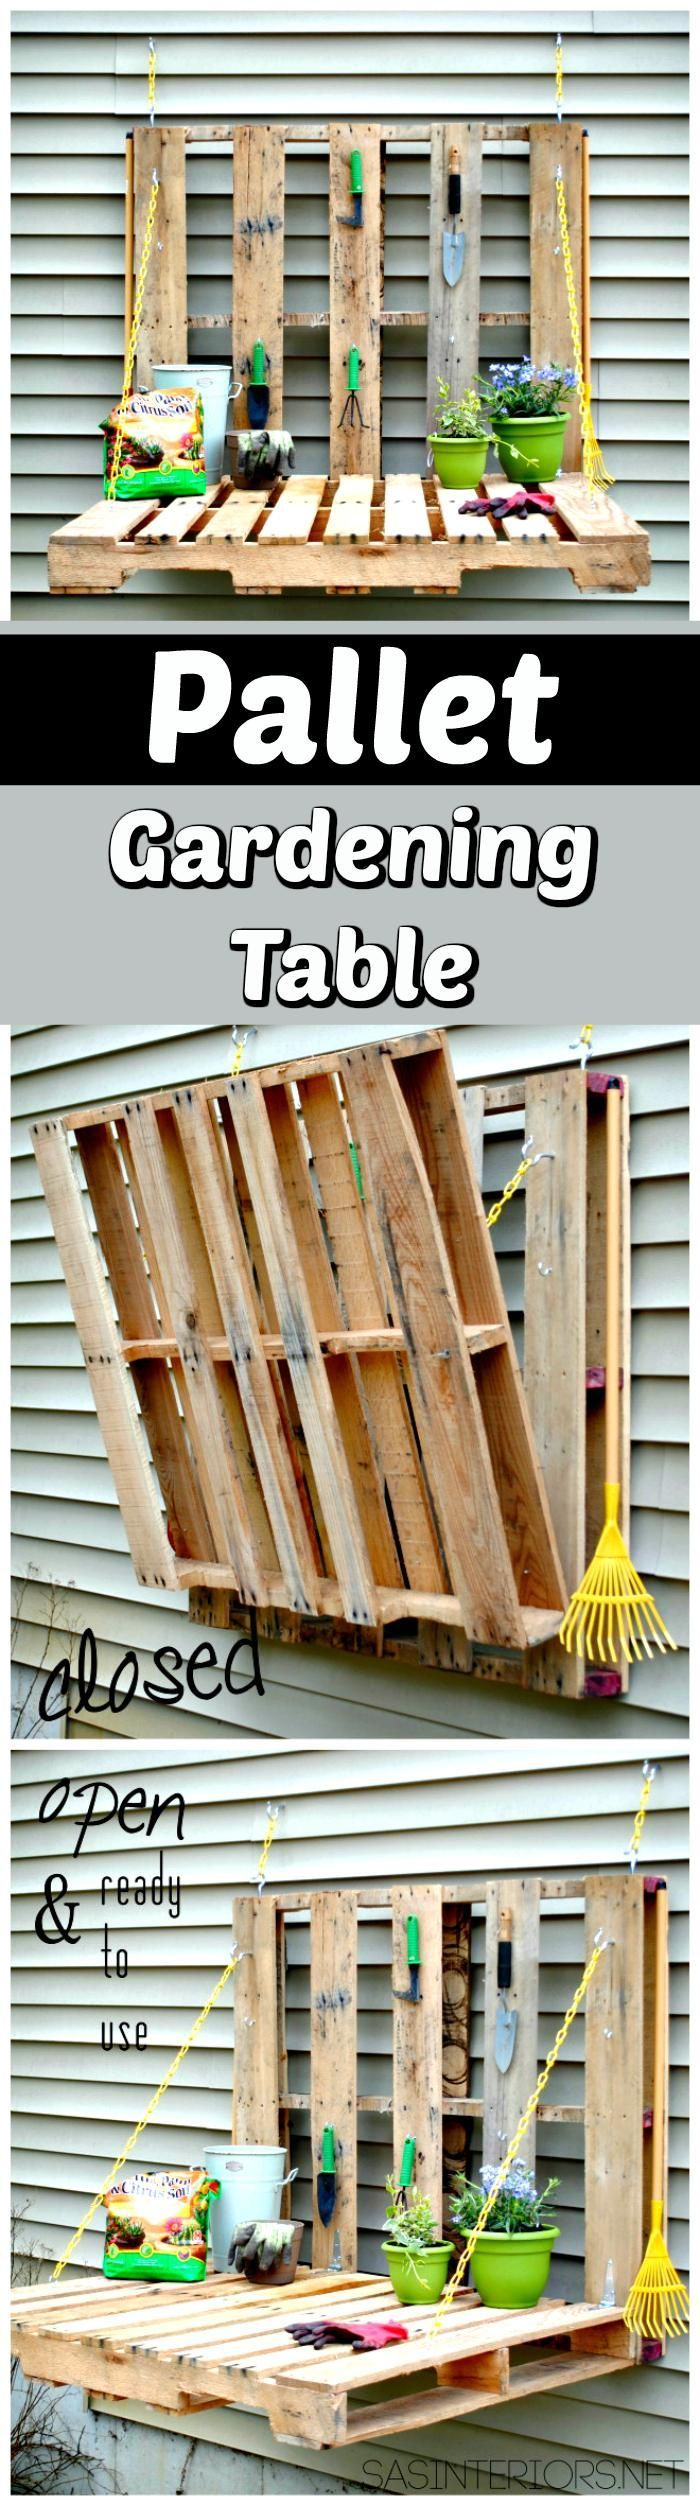 Wall Hanging Folding Out Pallet Gardening Table - 150 Best DIY Pallet Projects a... #kräutergartenpalette